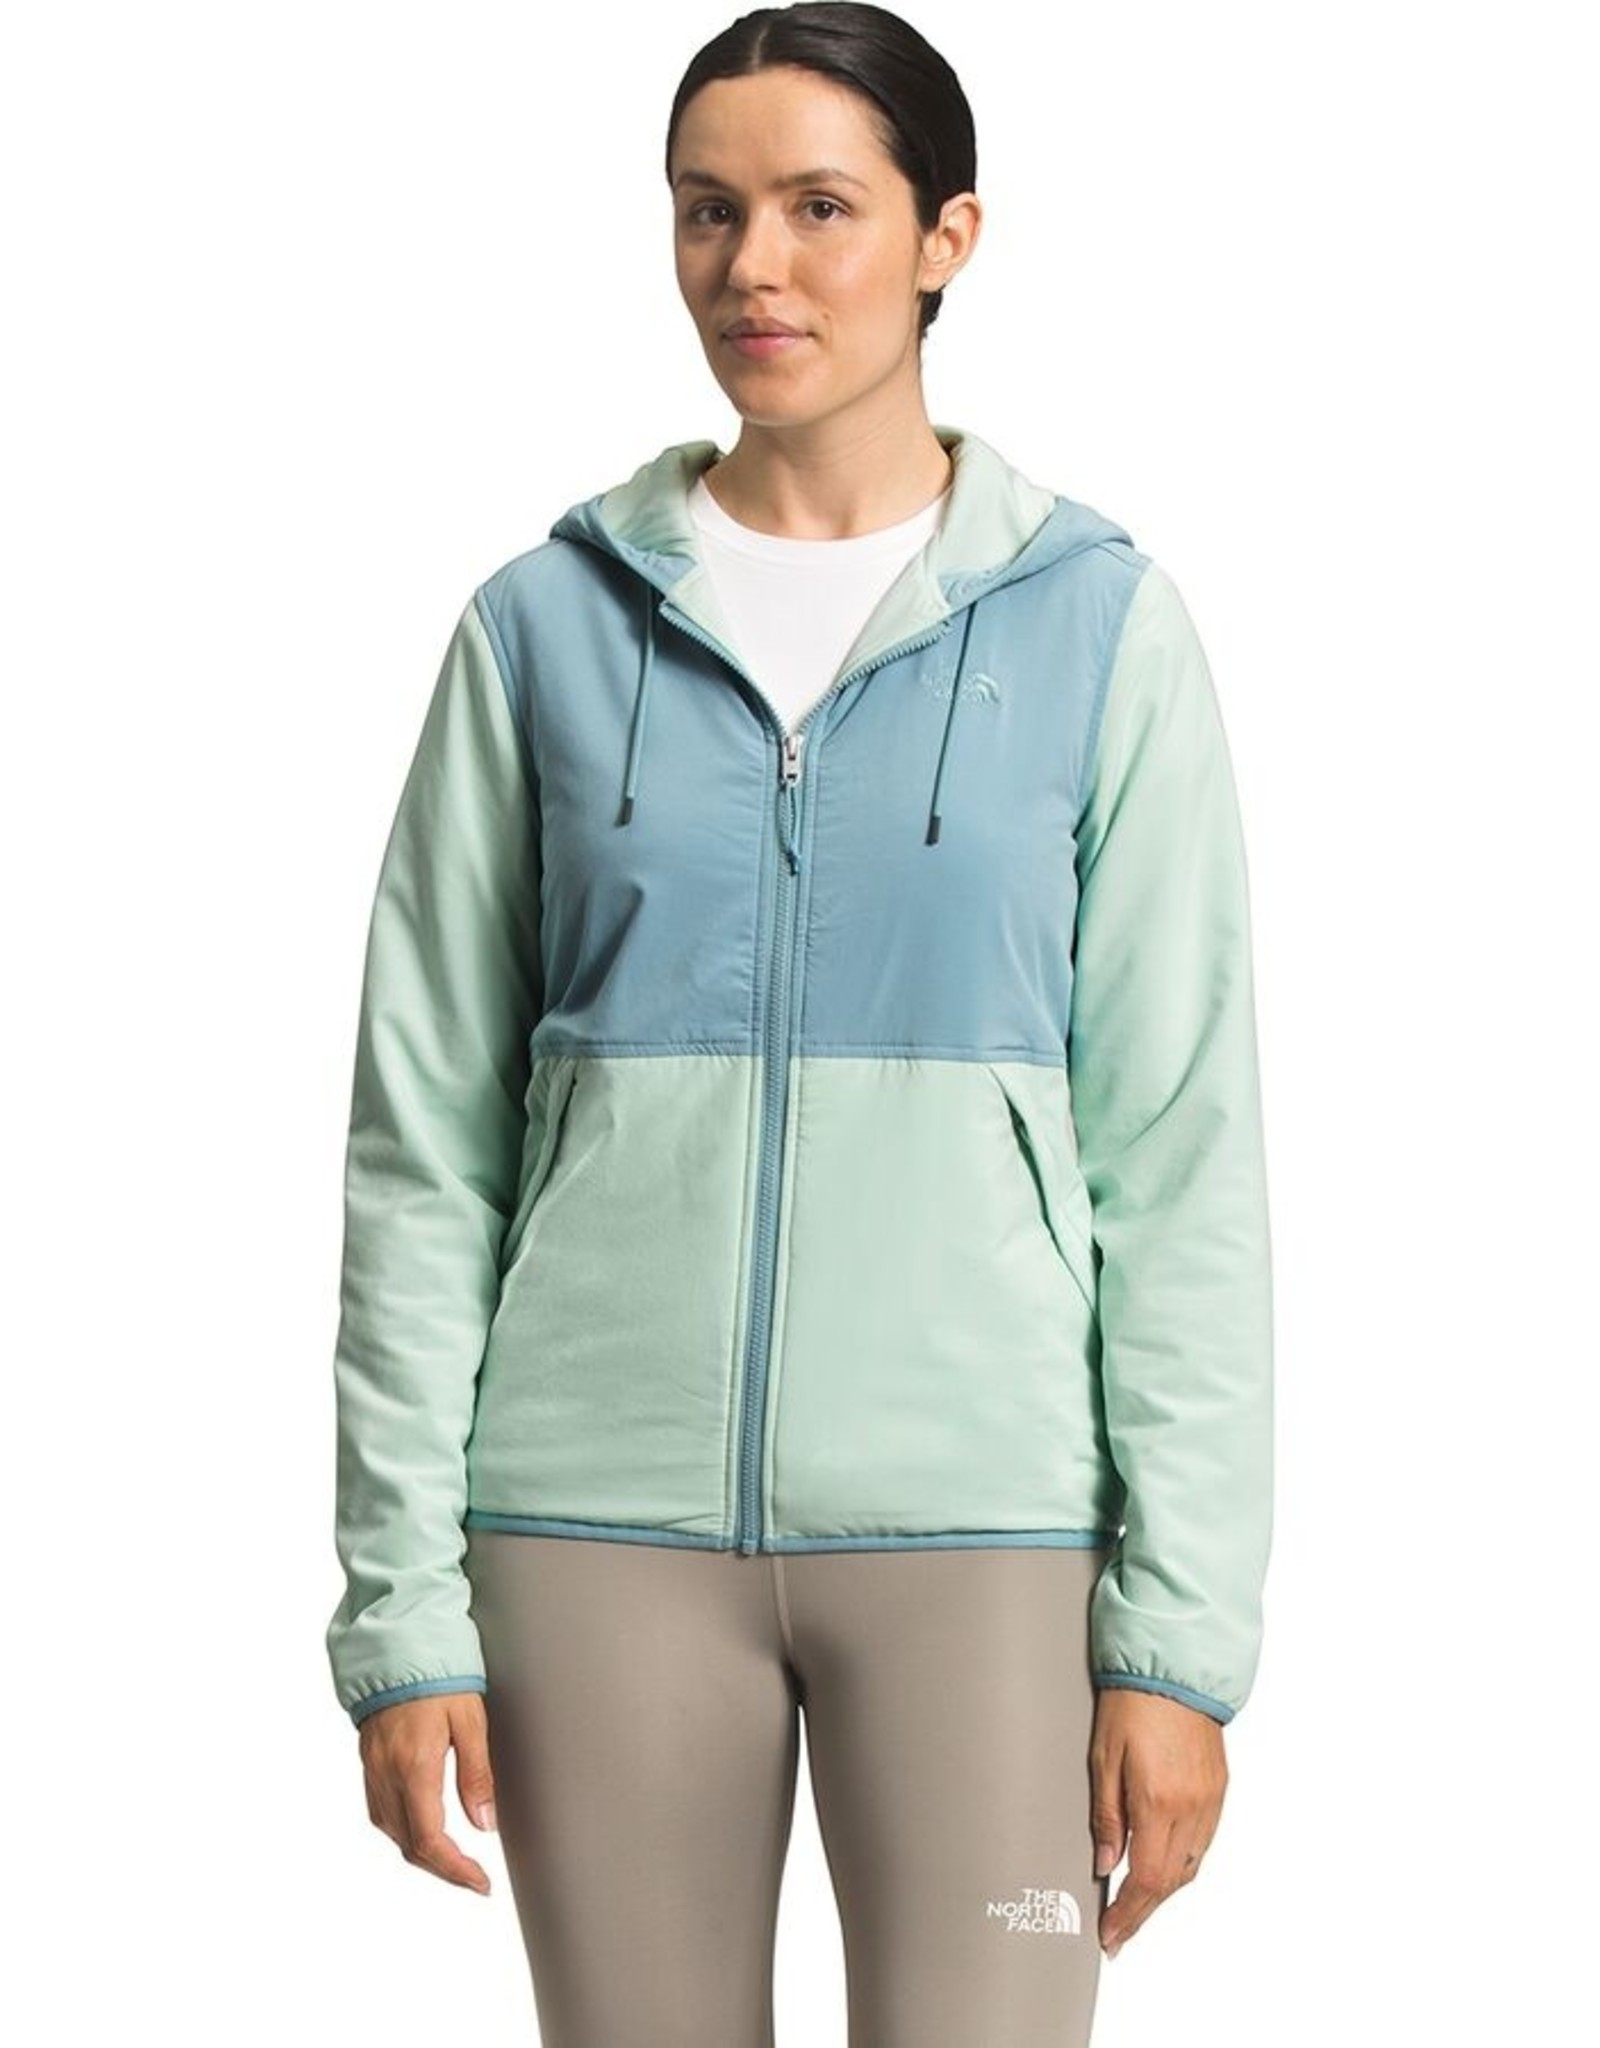 The North Face The North Face Women's Mountain Sweatshirt Hoodie 3.0 -S2021